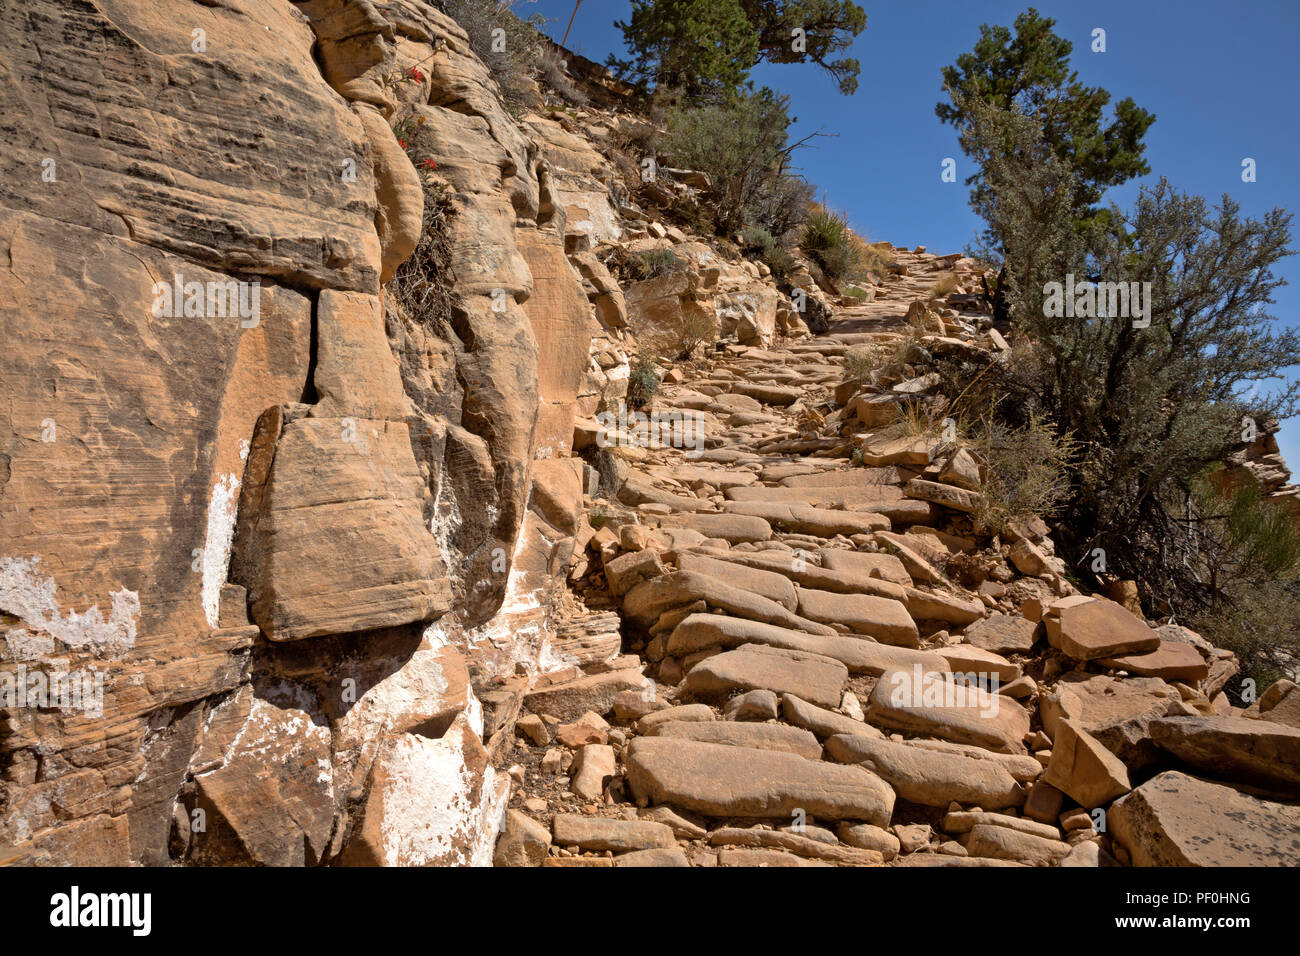 AZ00316-00...ARIZONA - The GrandView Trail in a steep section covered with cobble stones in Grand Canyon National Park. - Stock Image